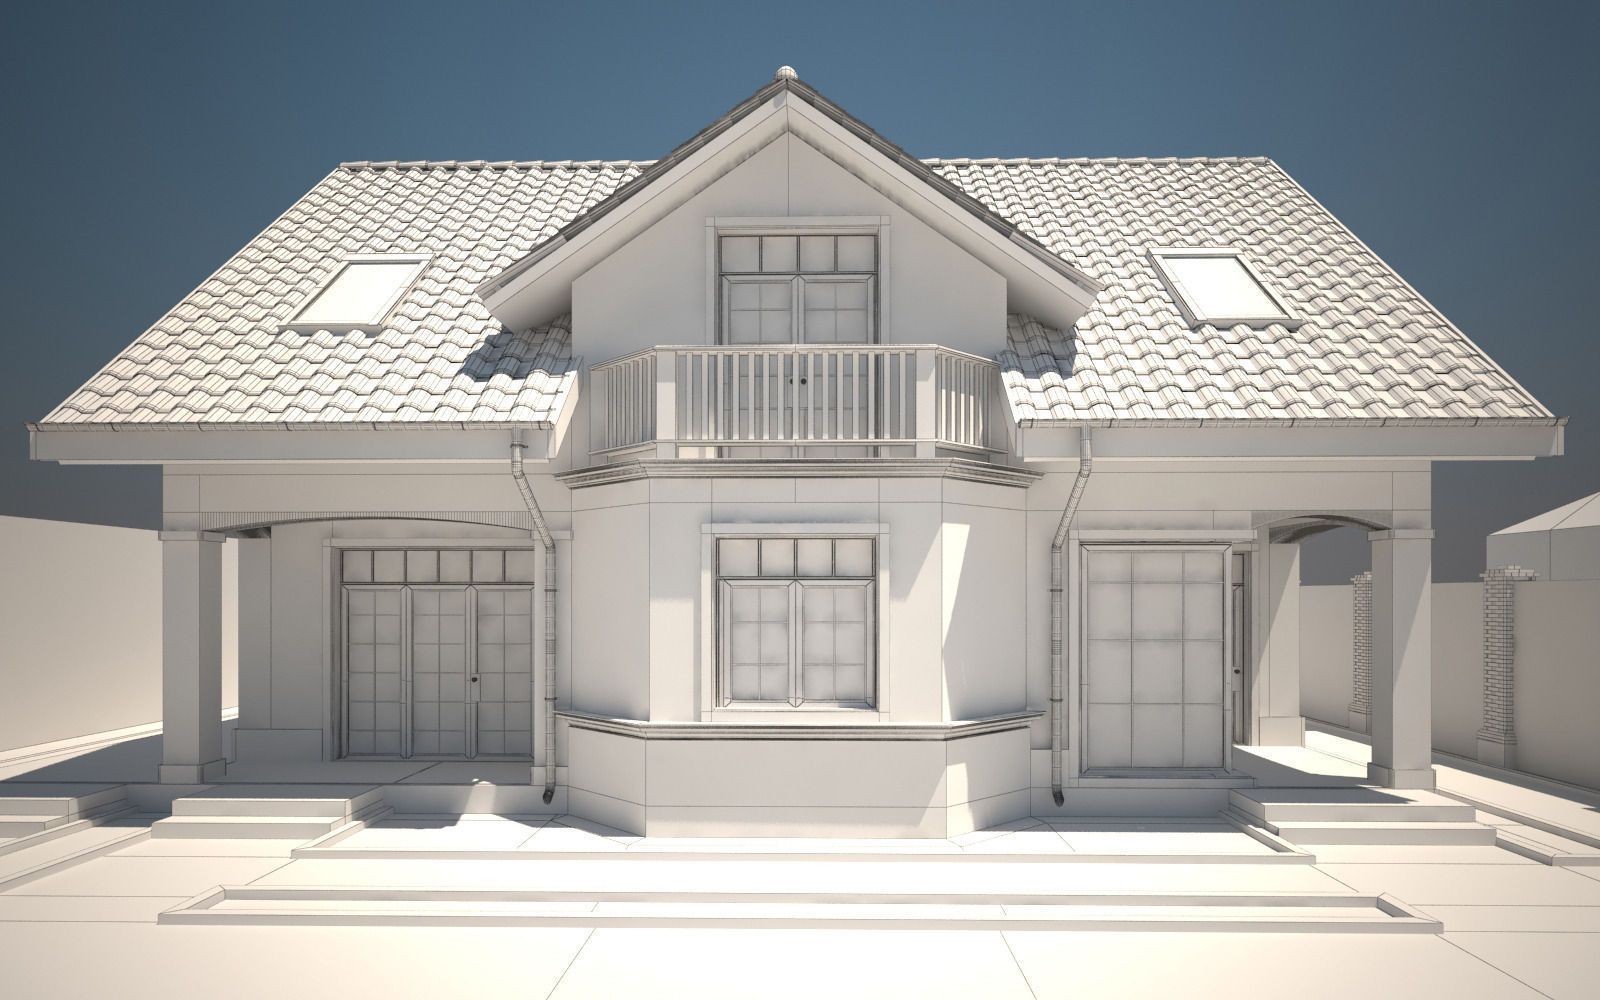 house exterior 3d model max obj 3ds dwg mtl tga